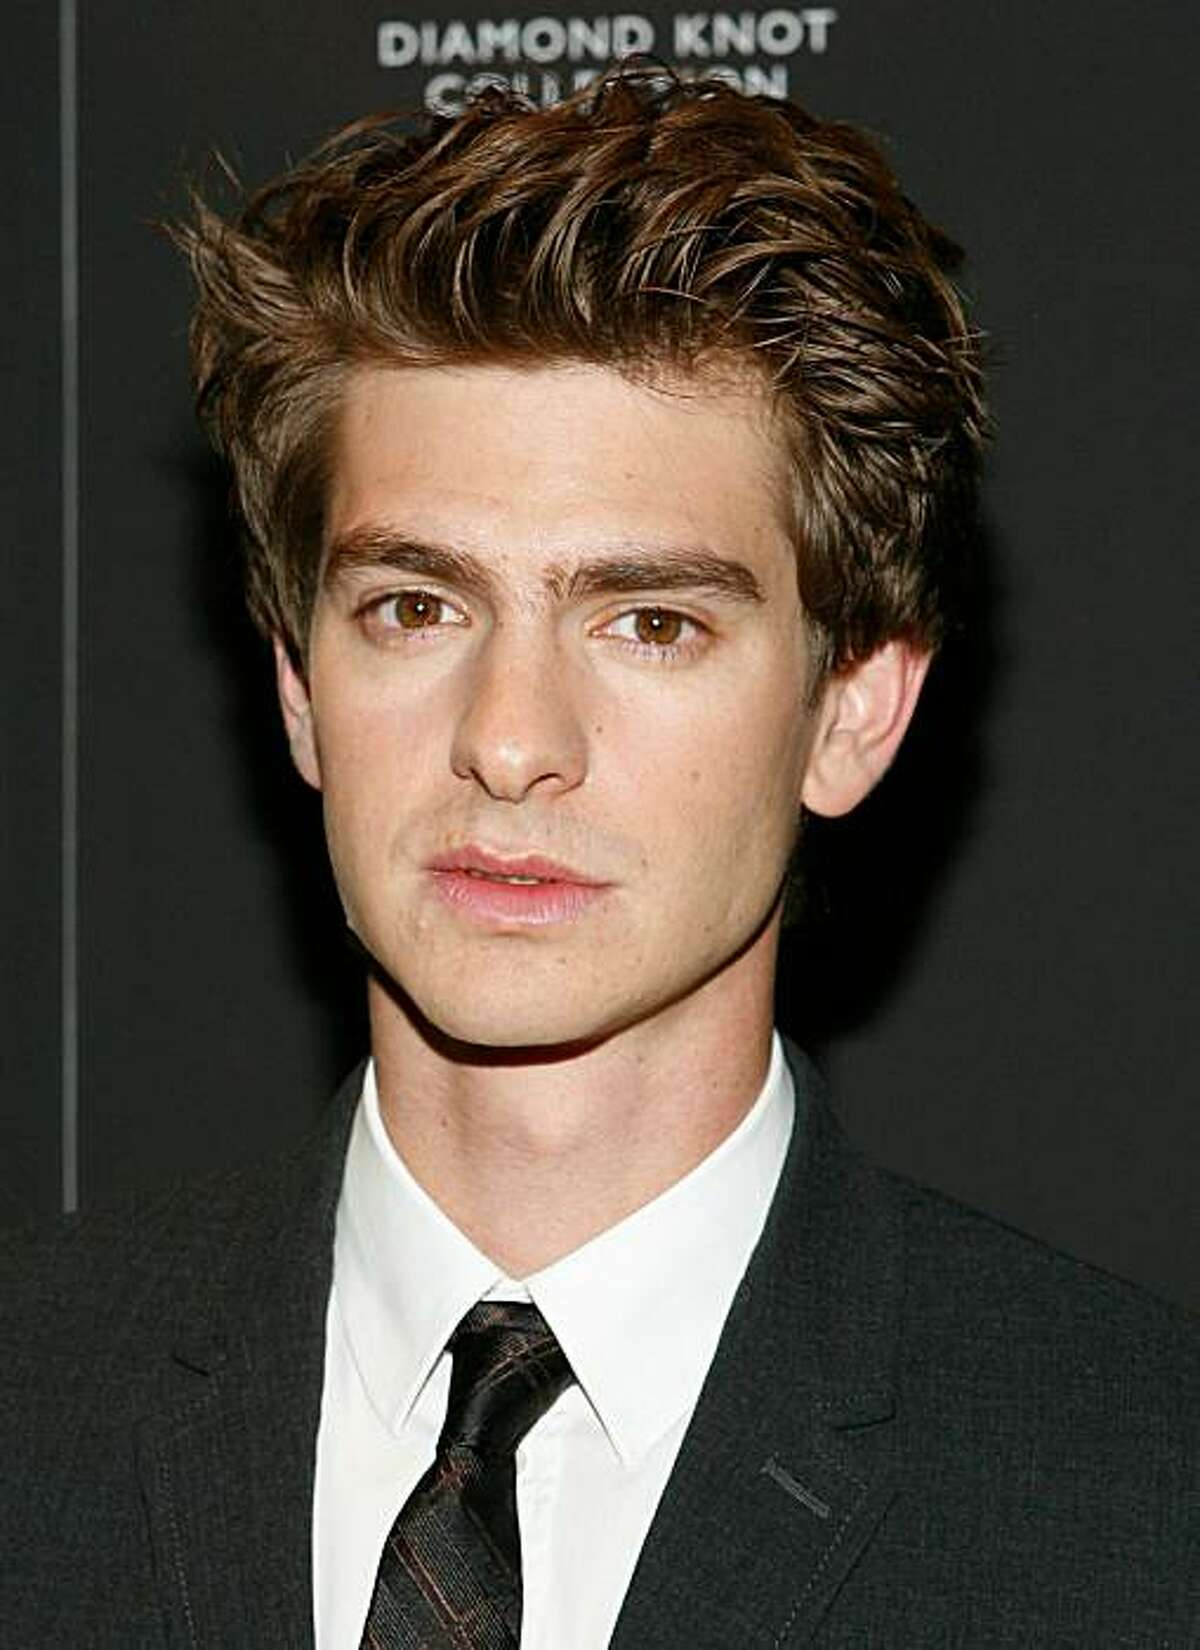 """NEW YORK - SEPTEMBER 14: Actor Andrew Garfield attends the """"Never Let Me Go"""" special screening at Tribeca Grand Hotel on September 14, 2010 in New York City."""